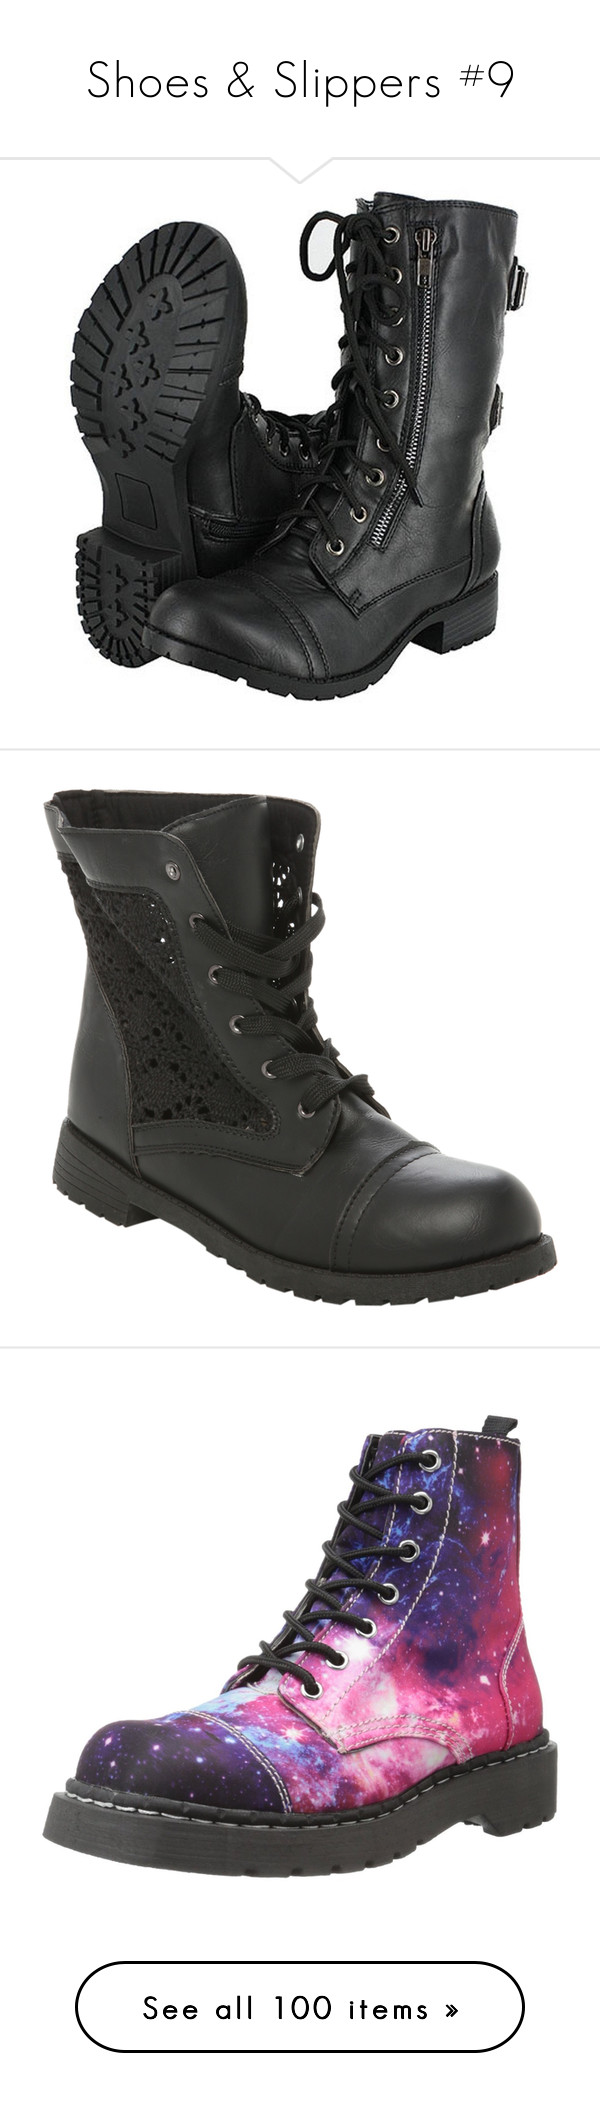 """""""Shoes & Slippers #9"""" by amsmith0107 ❤ liked on Polyvore featuring shoes, boots, ankle booties, lace up booties, black lace up booties, black lace up ankle booties, black ankle booties, black boots, t u k boots and combat booties"""